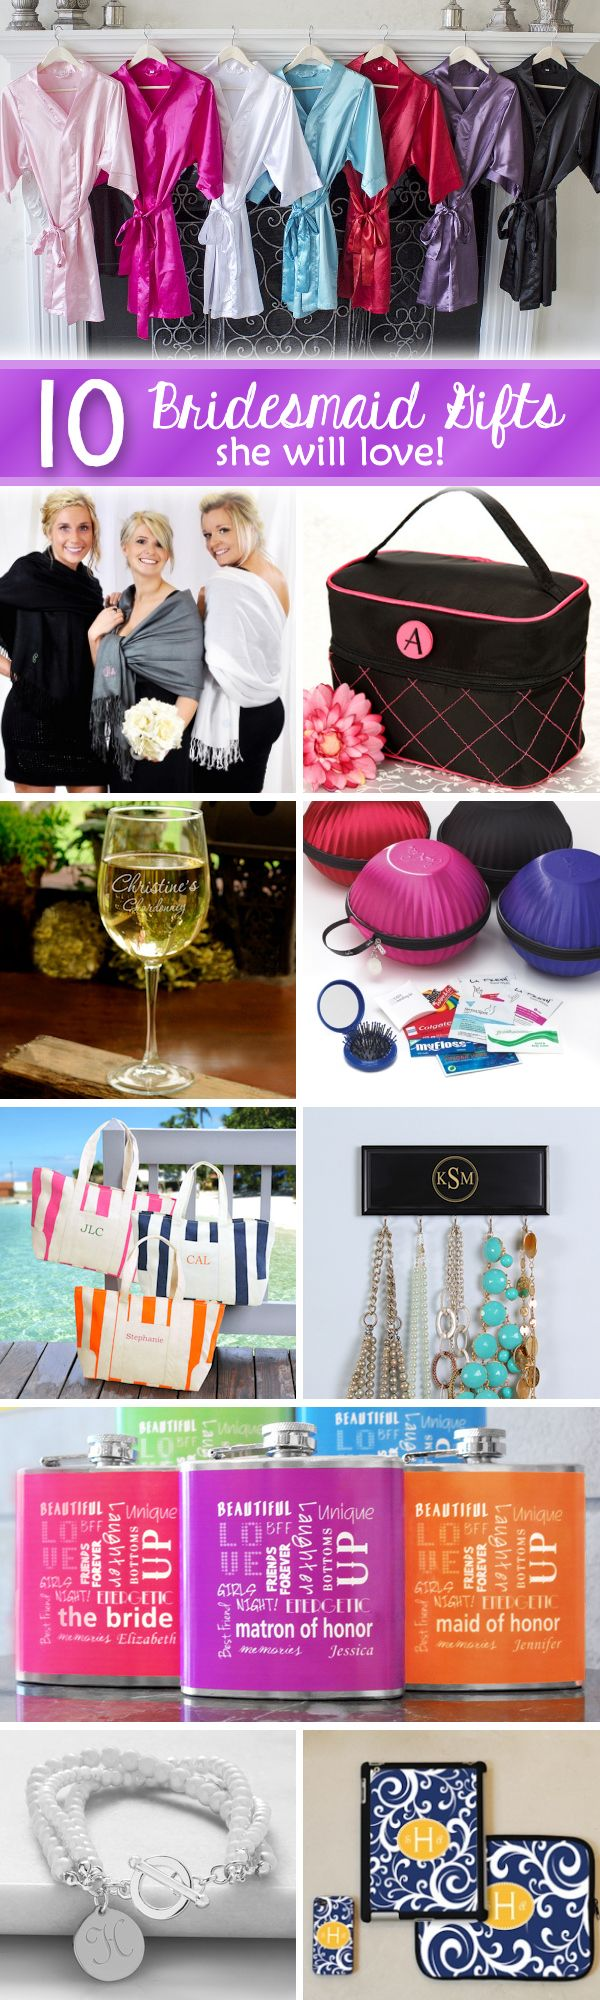 1000 ideas about best bridesmaid gifts on pinterest for Gifts she ll love